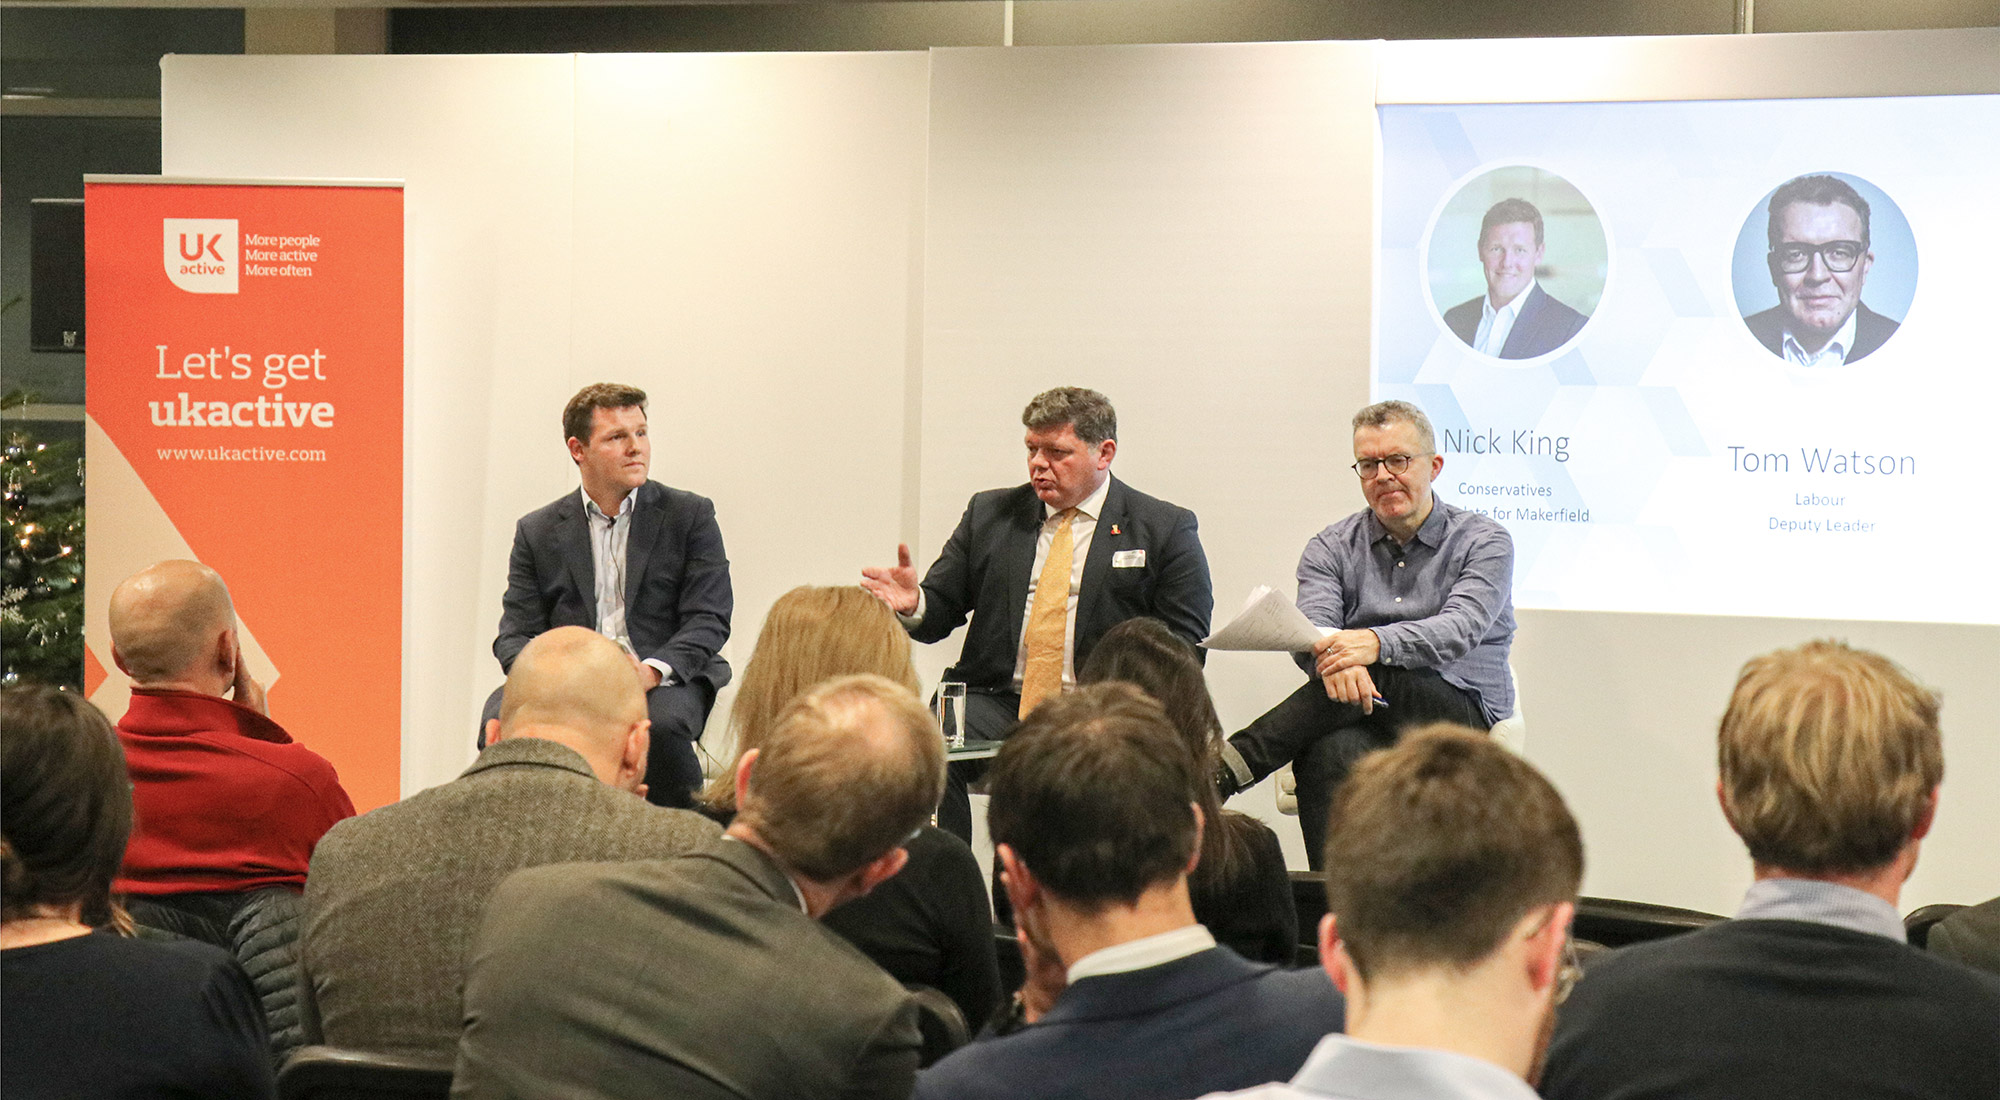 Hustings reveal cross-party support for ukactive policy calls ahead of General Election